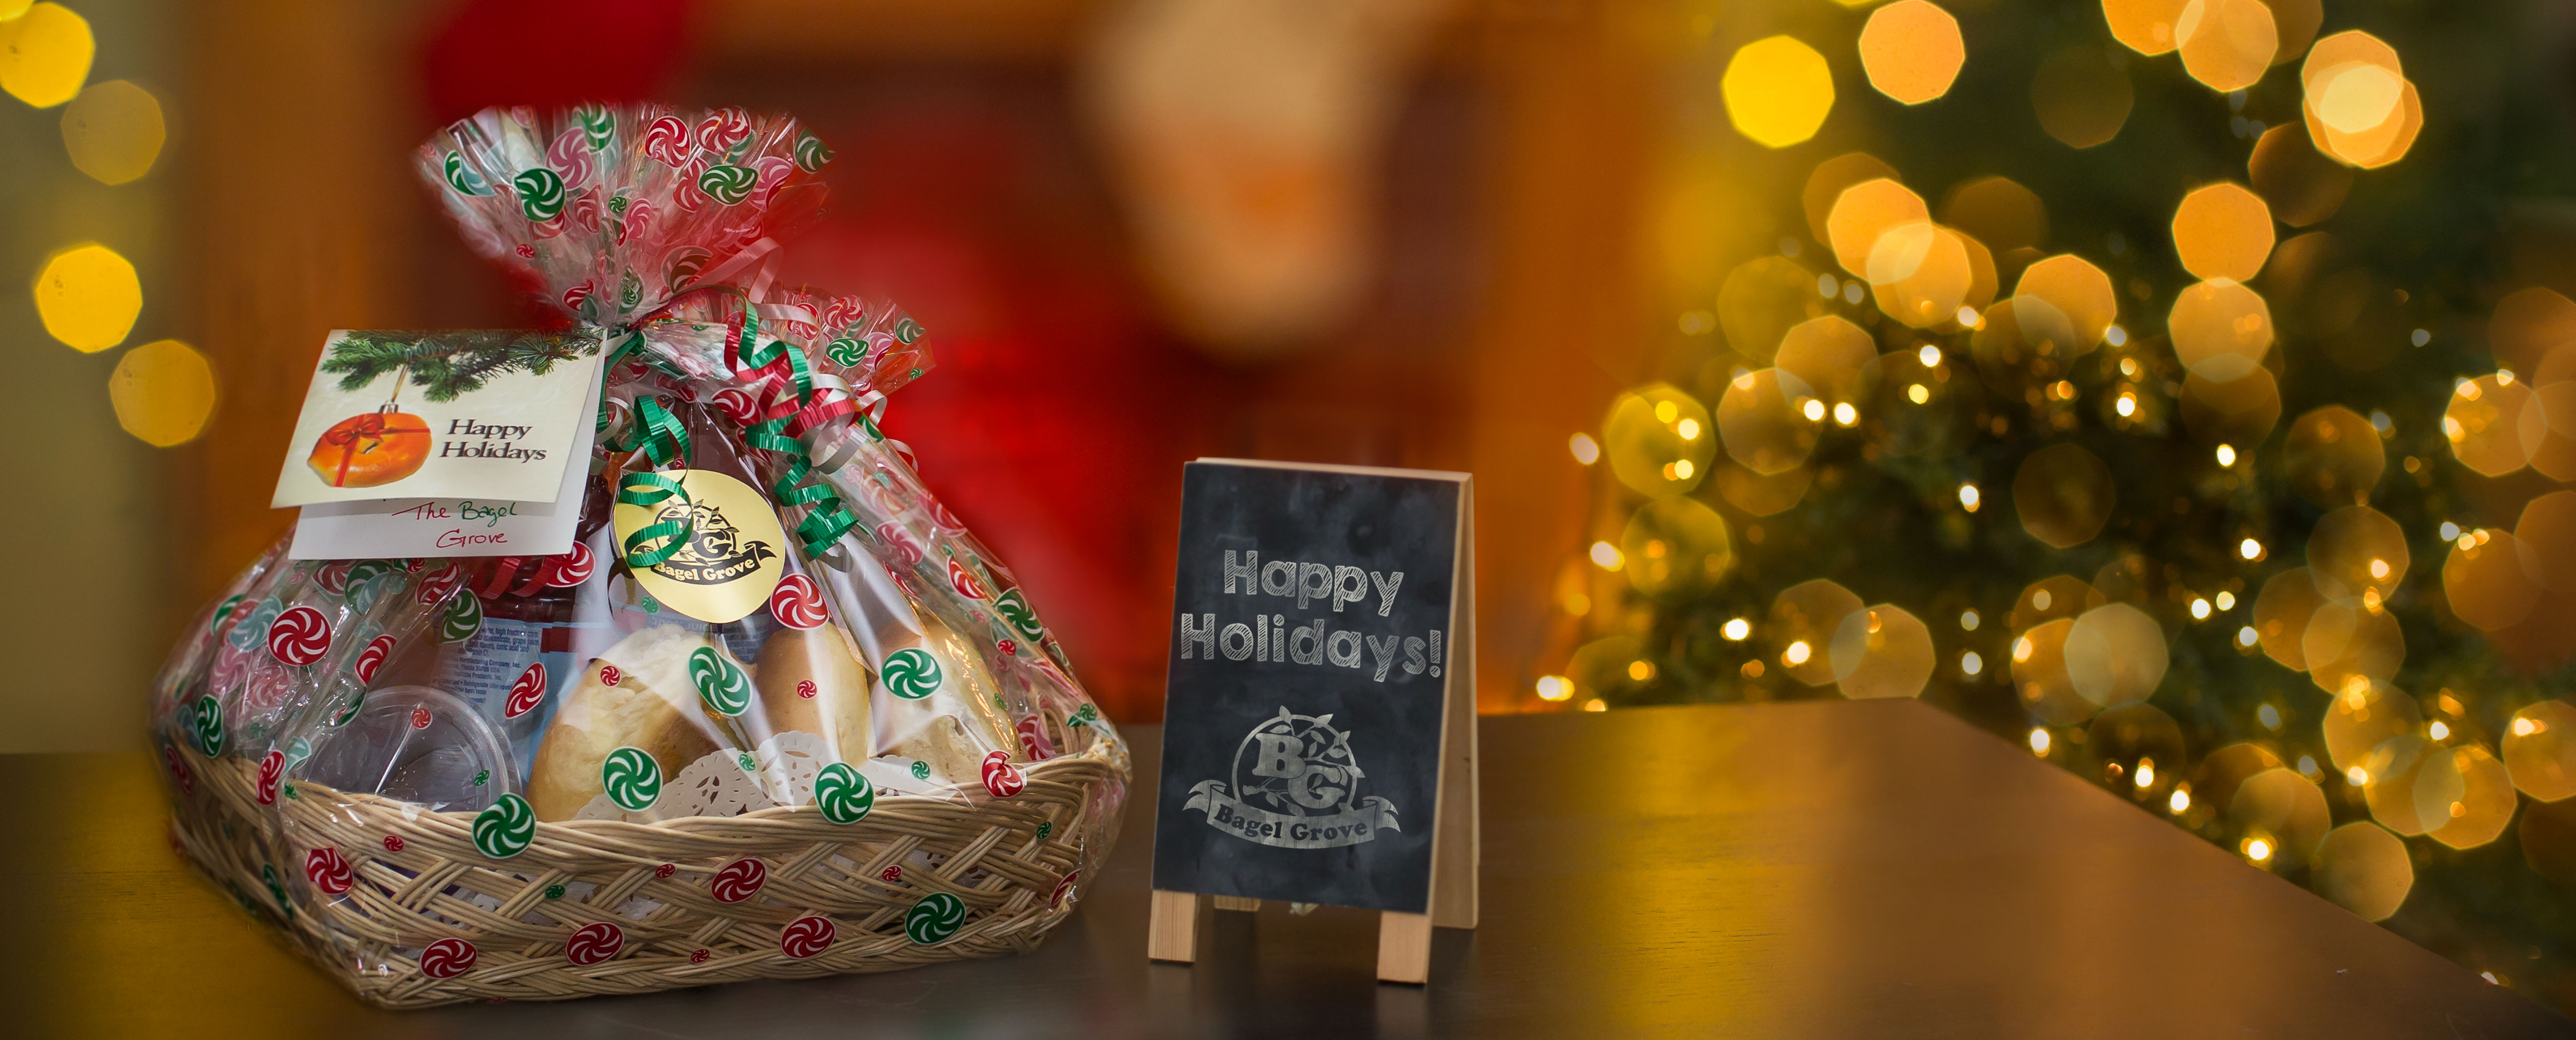 Holiday-Gify-Baskets-feature-holiday-gift-basket